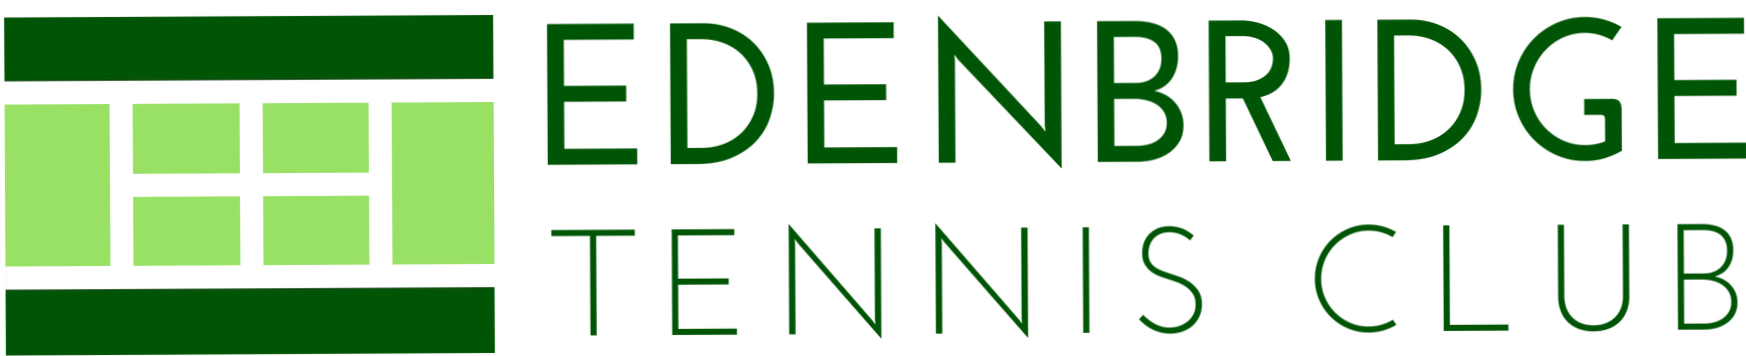 Edenbridge Tennis Club